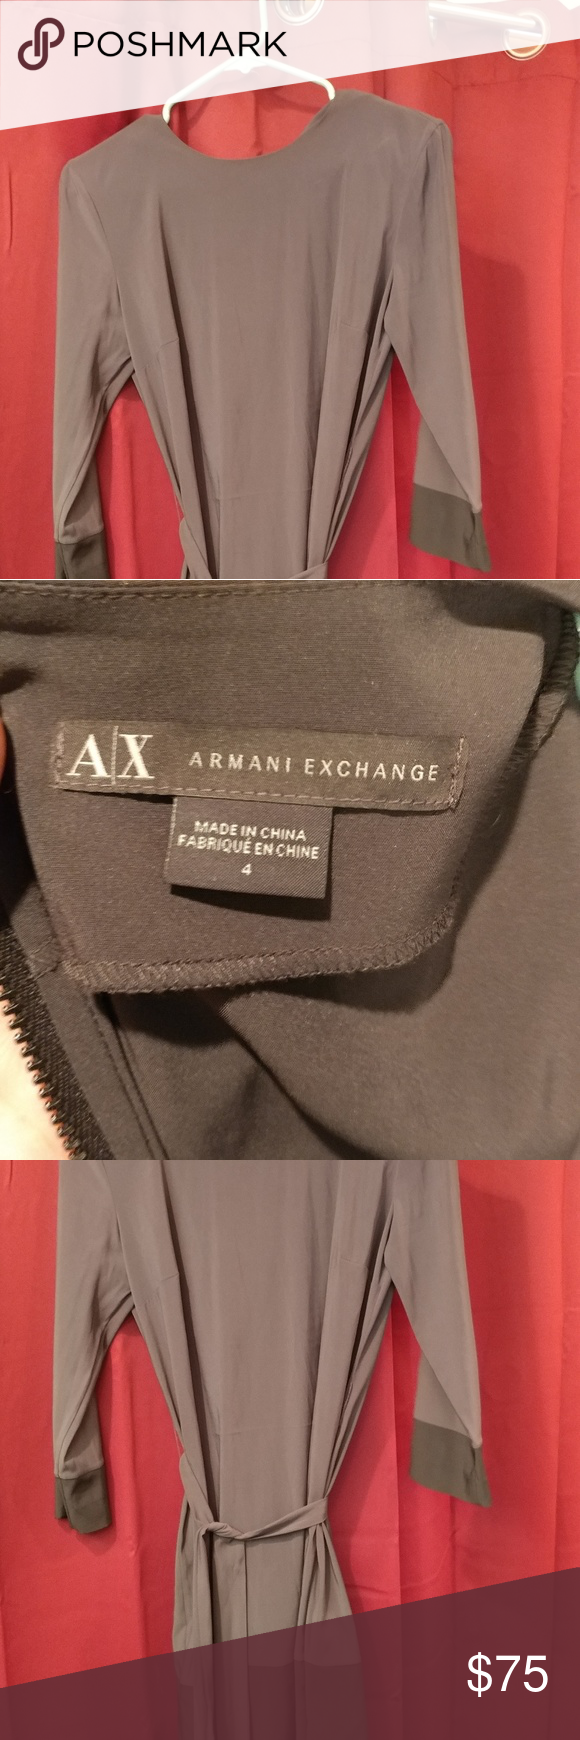 Armani exchange size 4 dress Beautiful love it.  I'm 5'7 and this dress comes just below the butt. Armani Exchange Dresses Mini